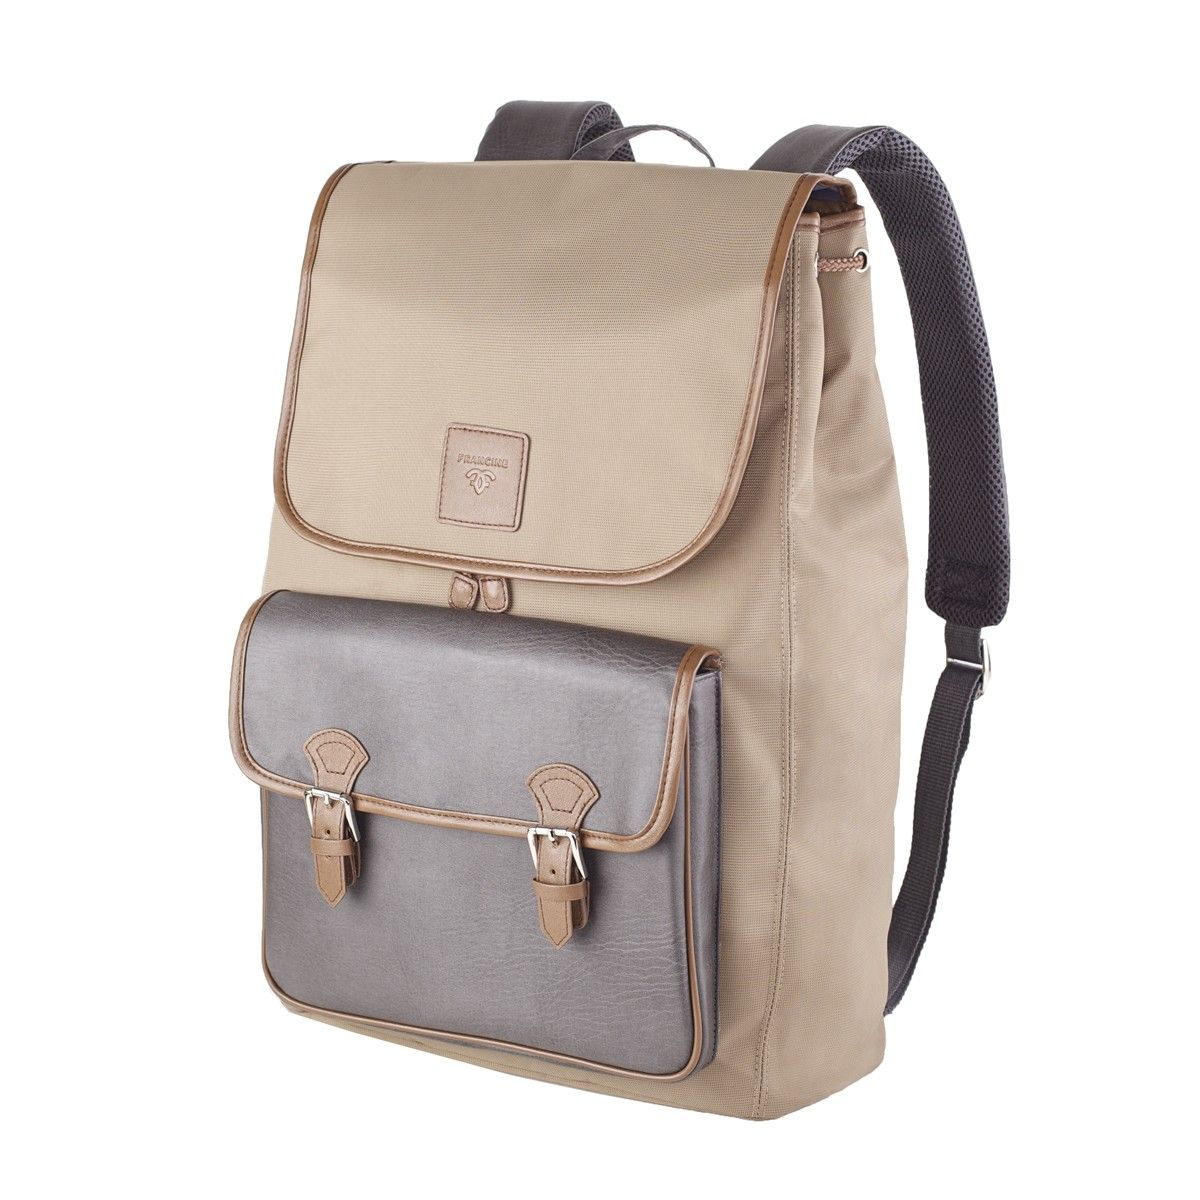 Chelsea backpack, by Francine. | Styles | Pinterest | Women's ...